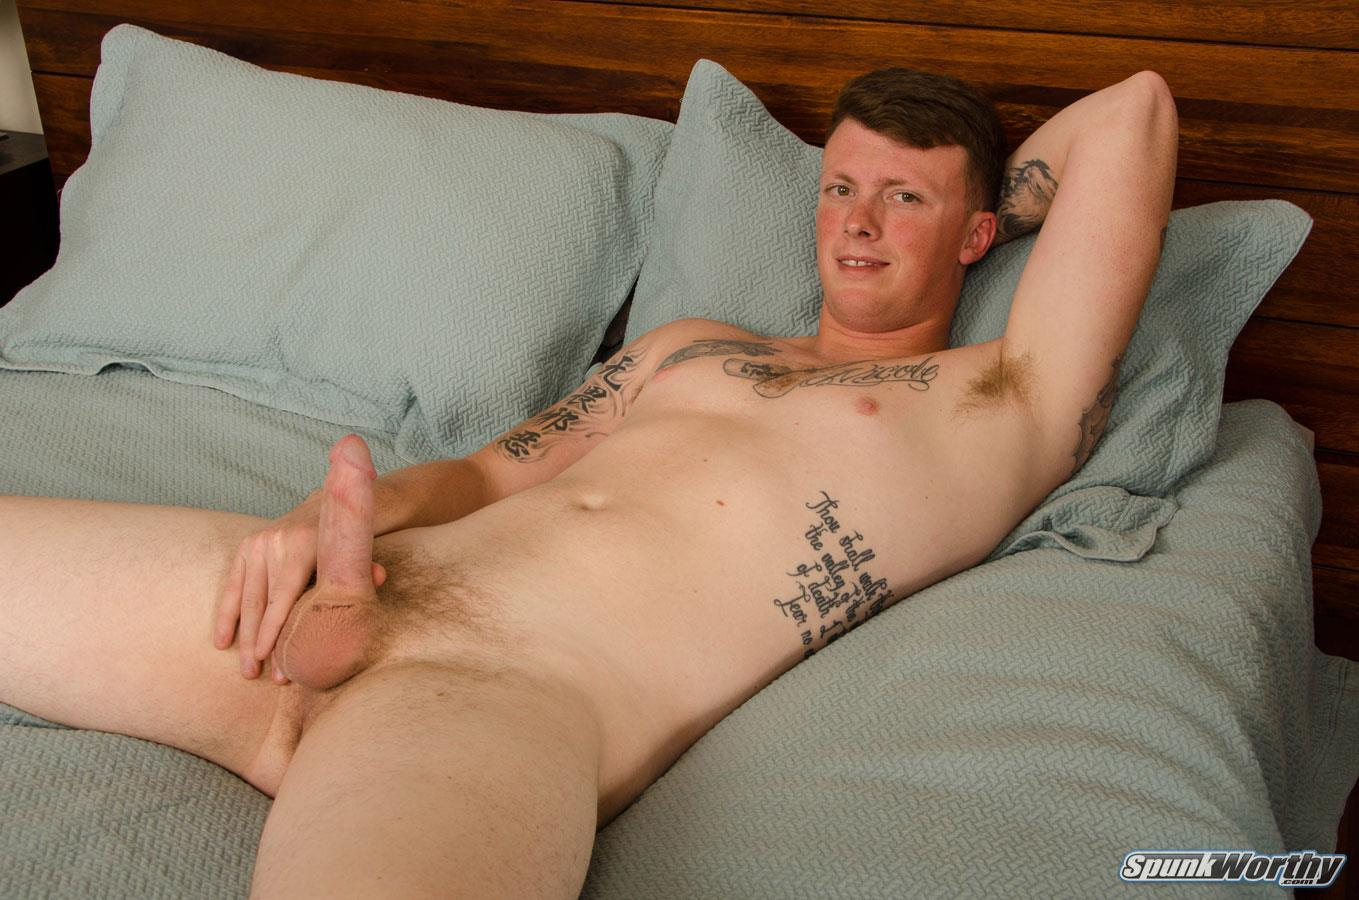 SpunkWorthy-Bryson-Marine-Gets-A-HandJob-From-Another-Guy-15 Redheaded Marine Gets Jerked Off By A Guy While His Wife Watches